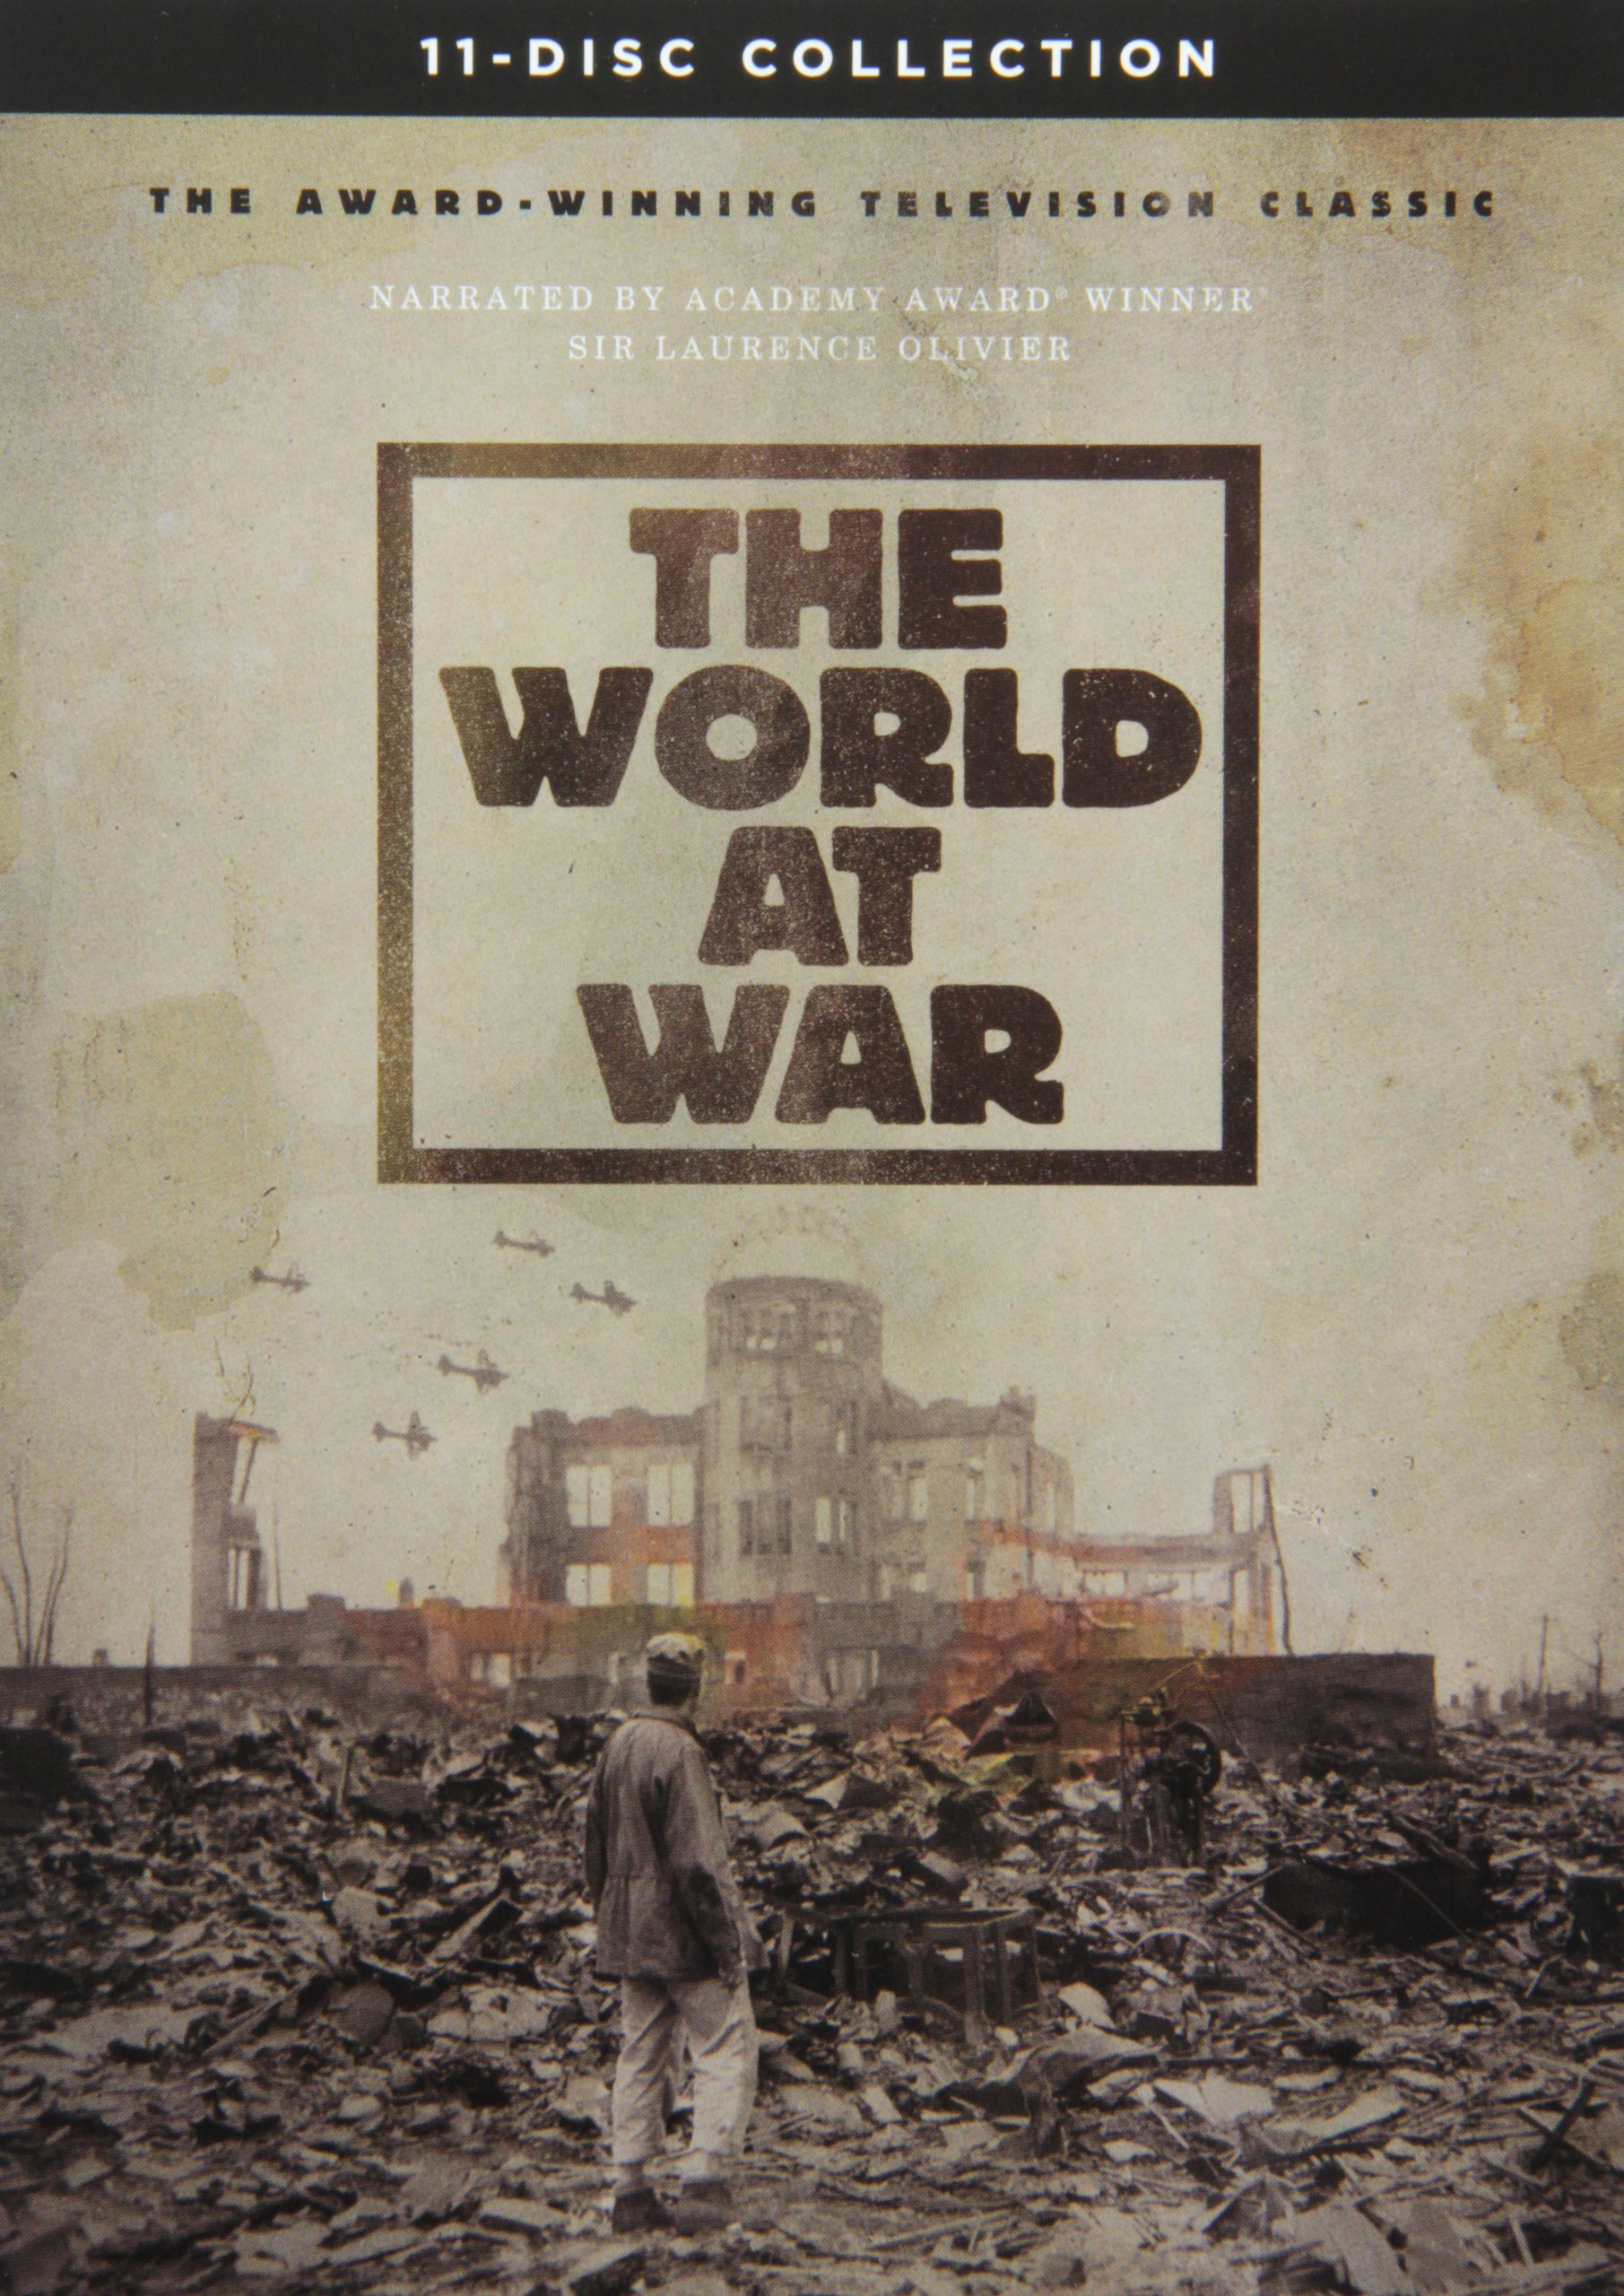 The World at War by A&E